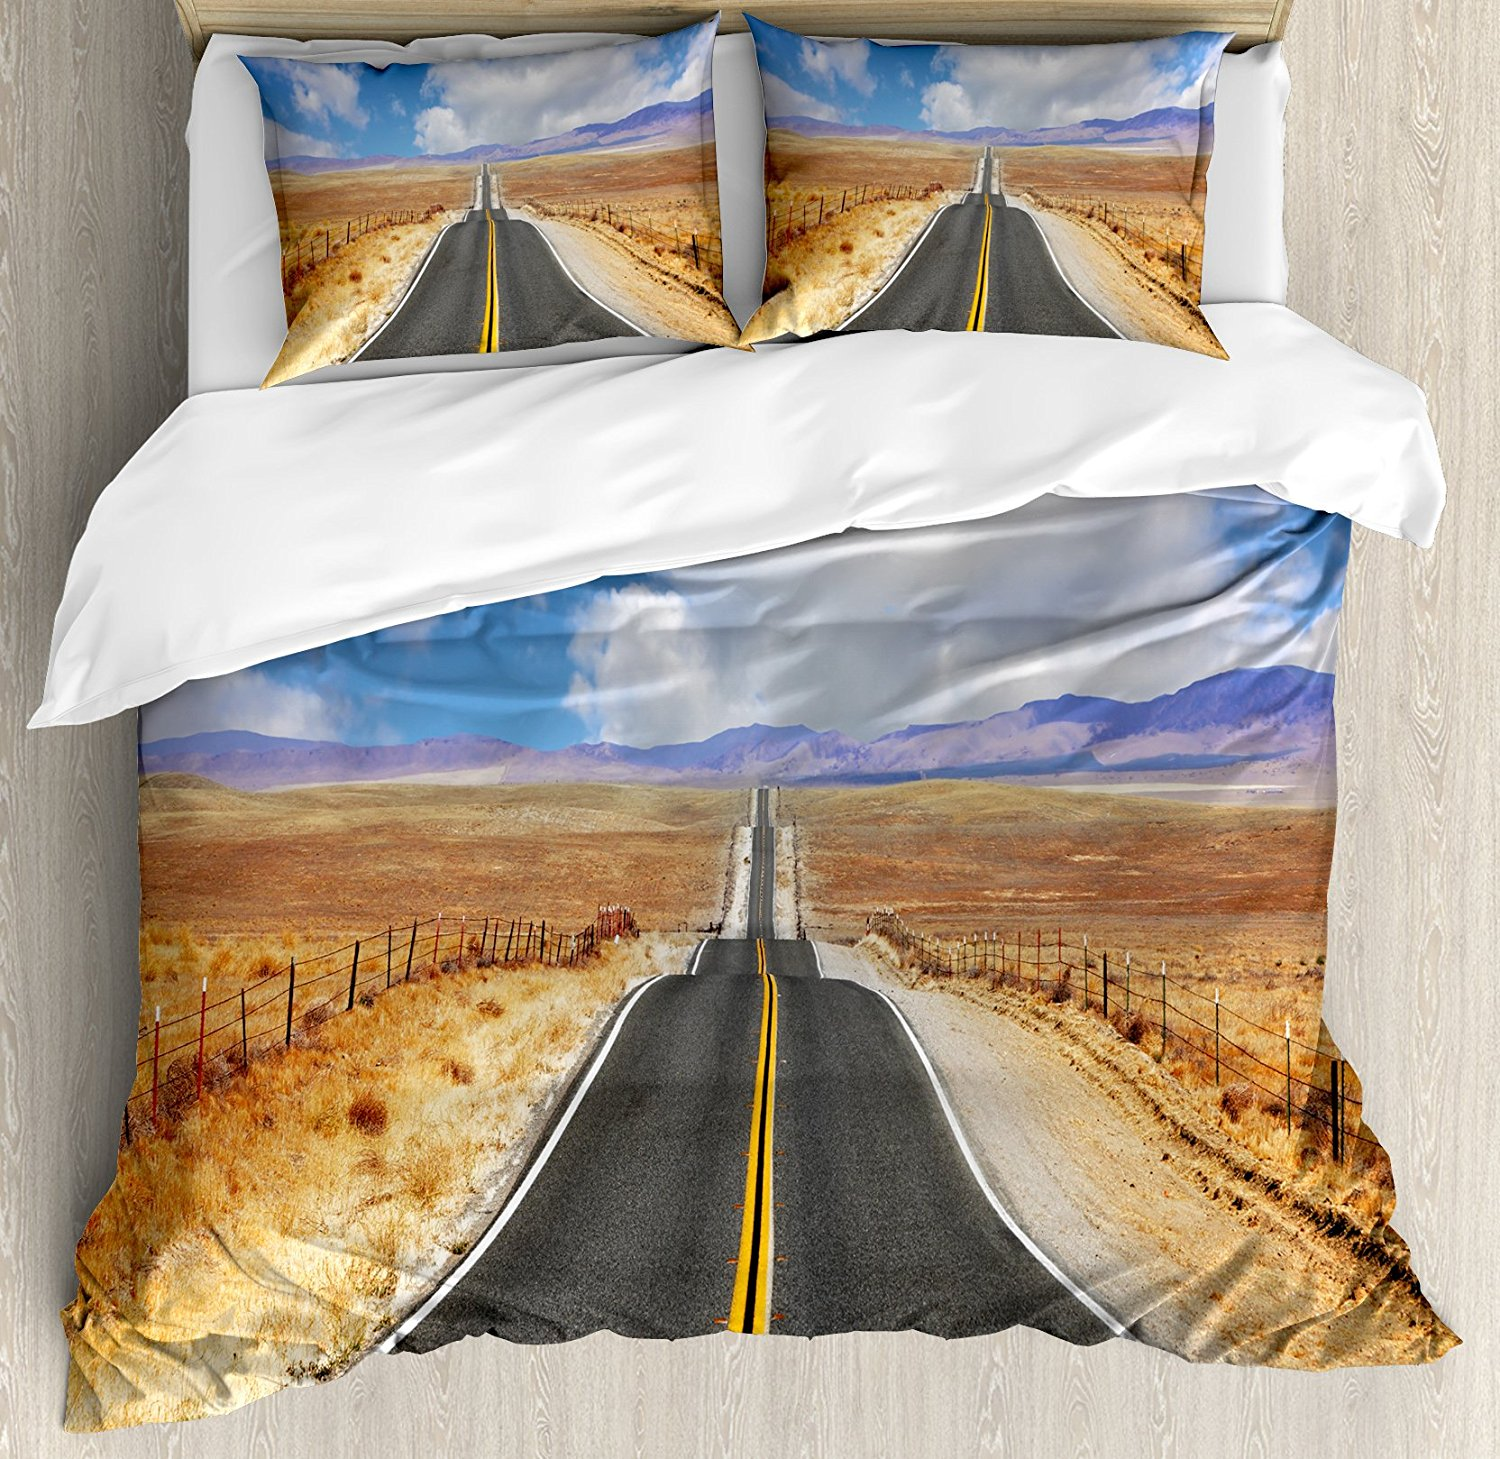 United States Duvet Cover Set King Size Highway in California Steppe and Clouds Asphalt Road Horizon Hills Journey, Multicolor